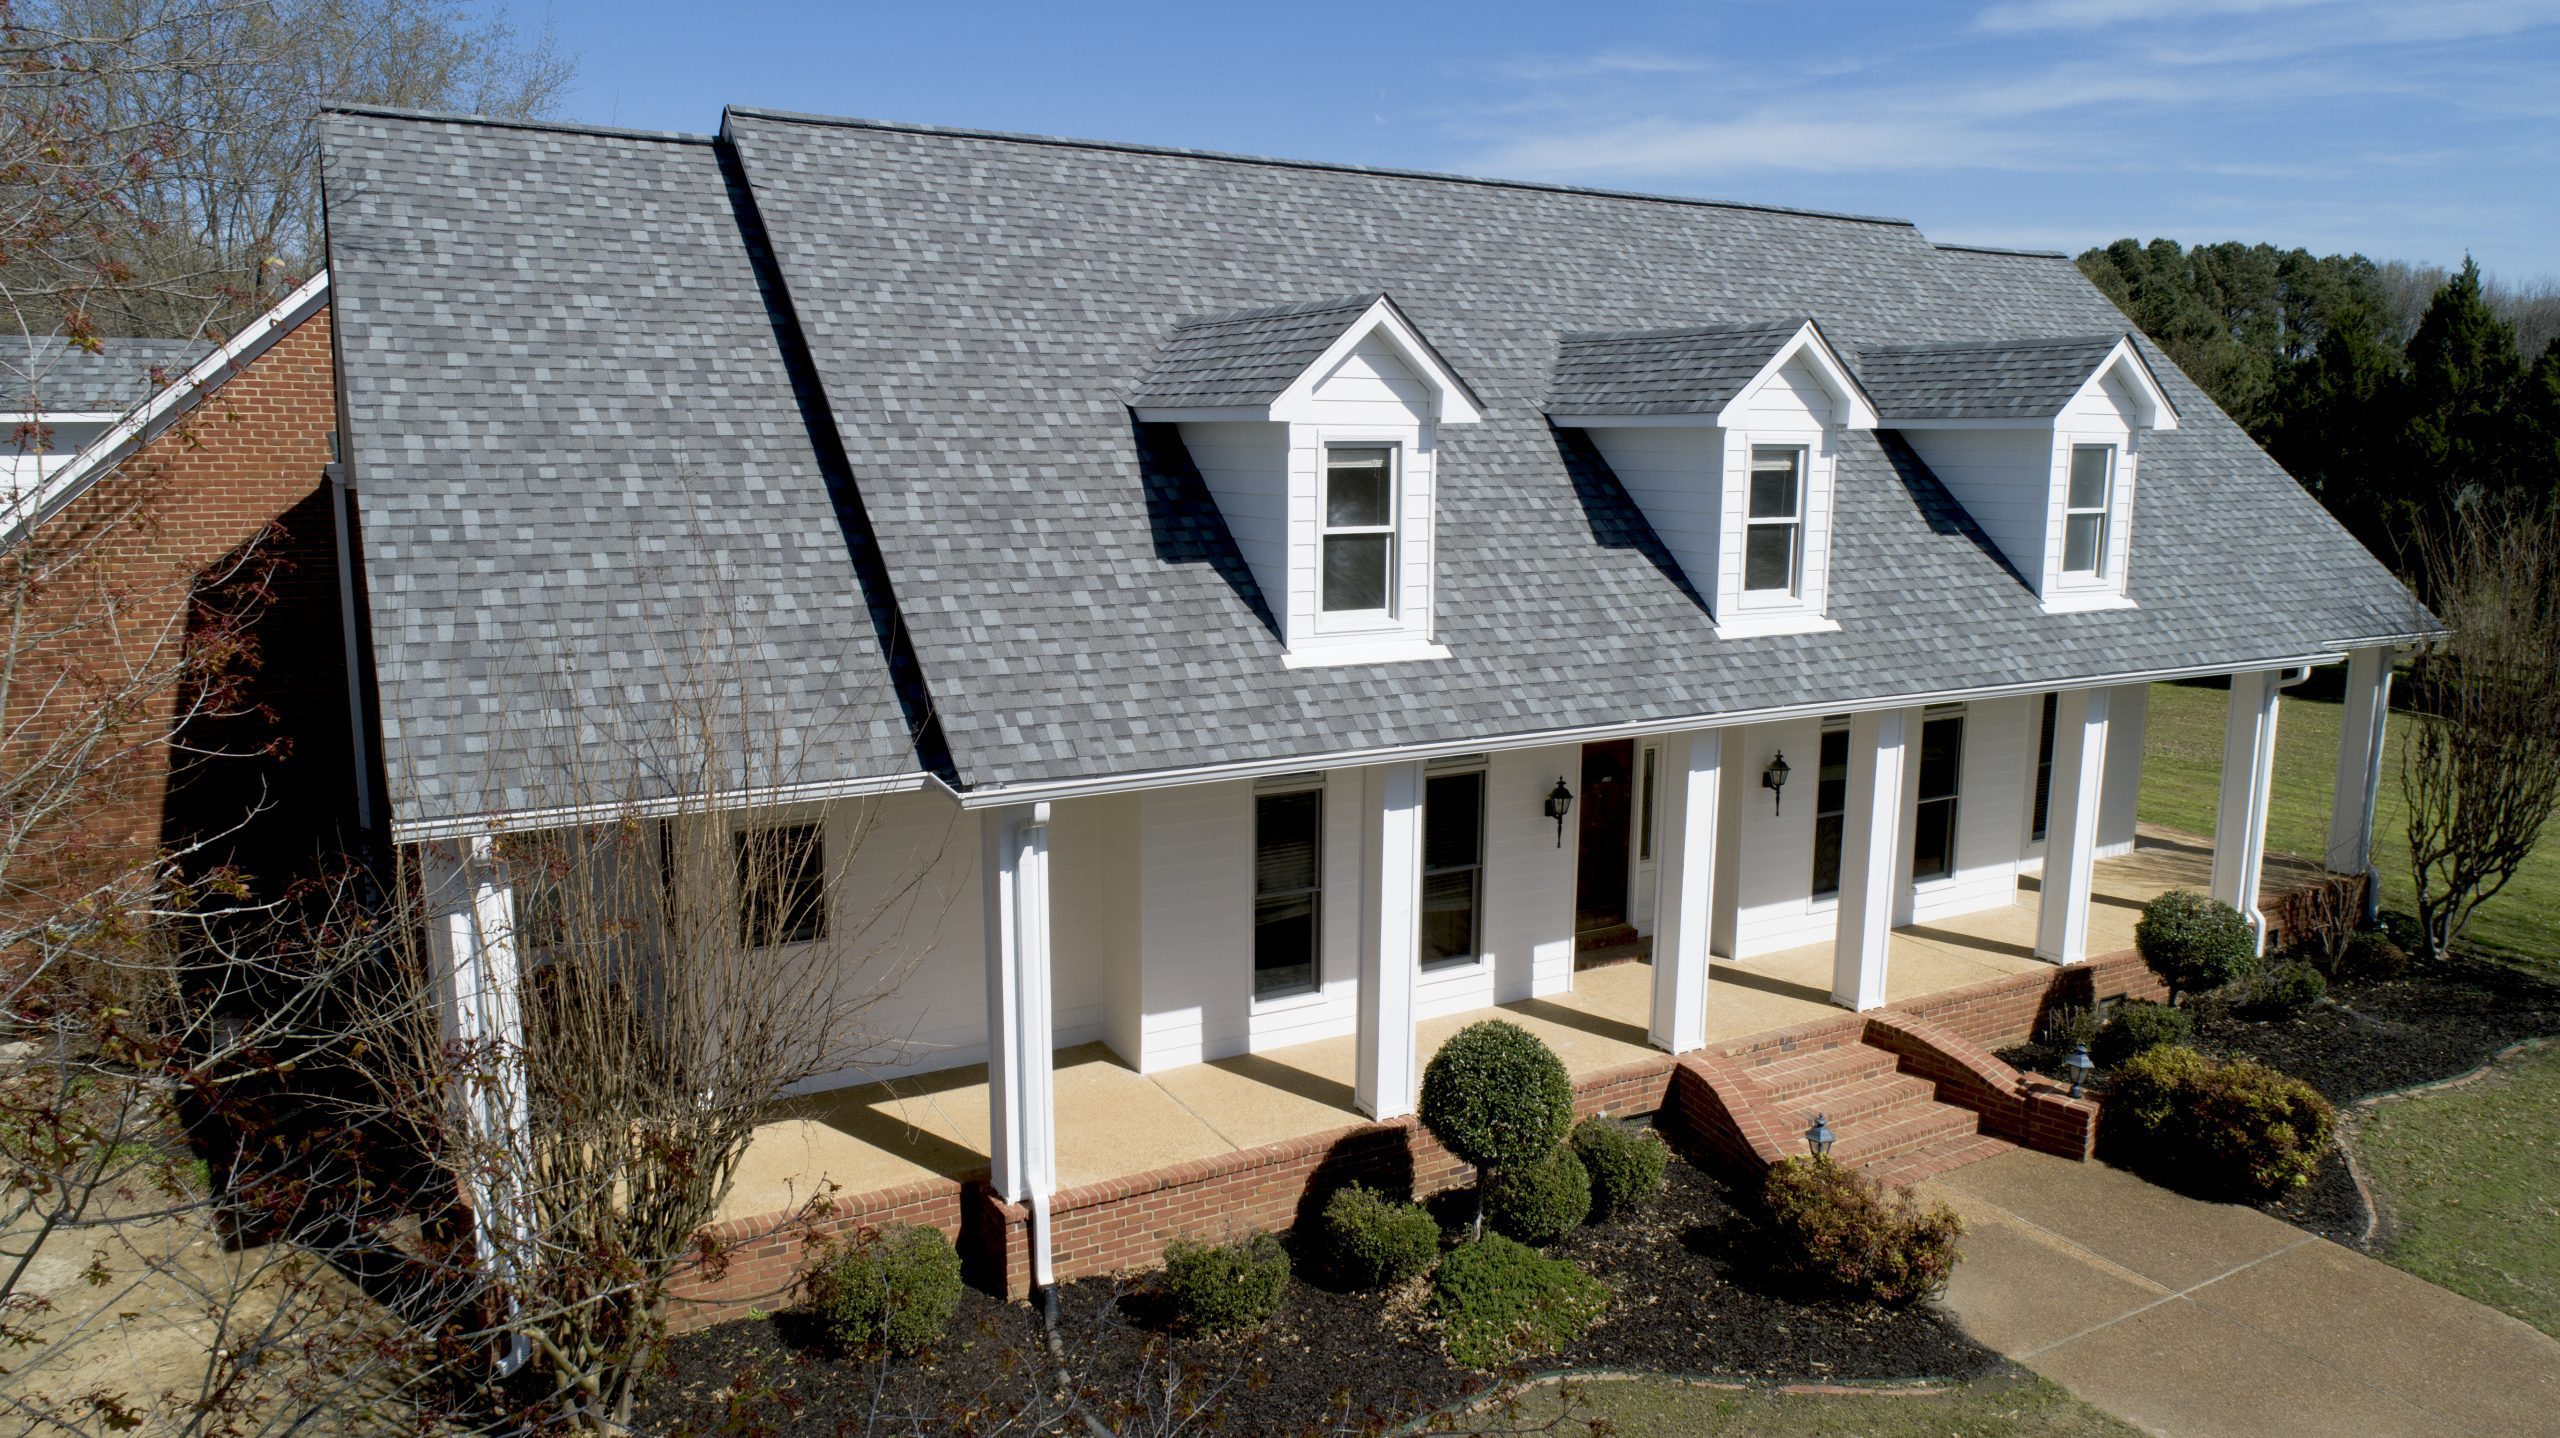 Residential Roof Repair And Replacement with Sands Roofing & Construction